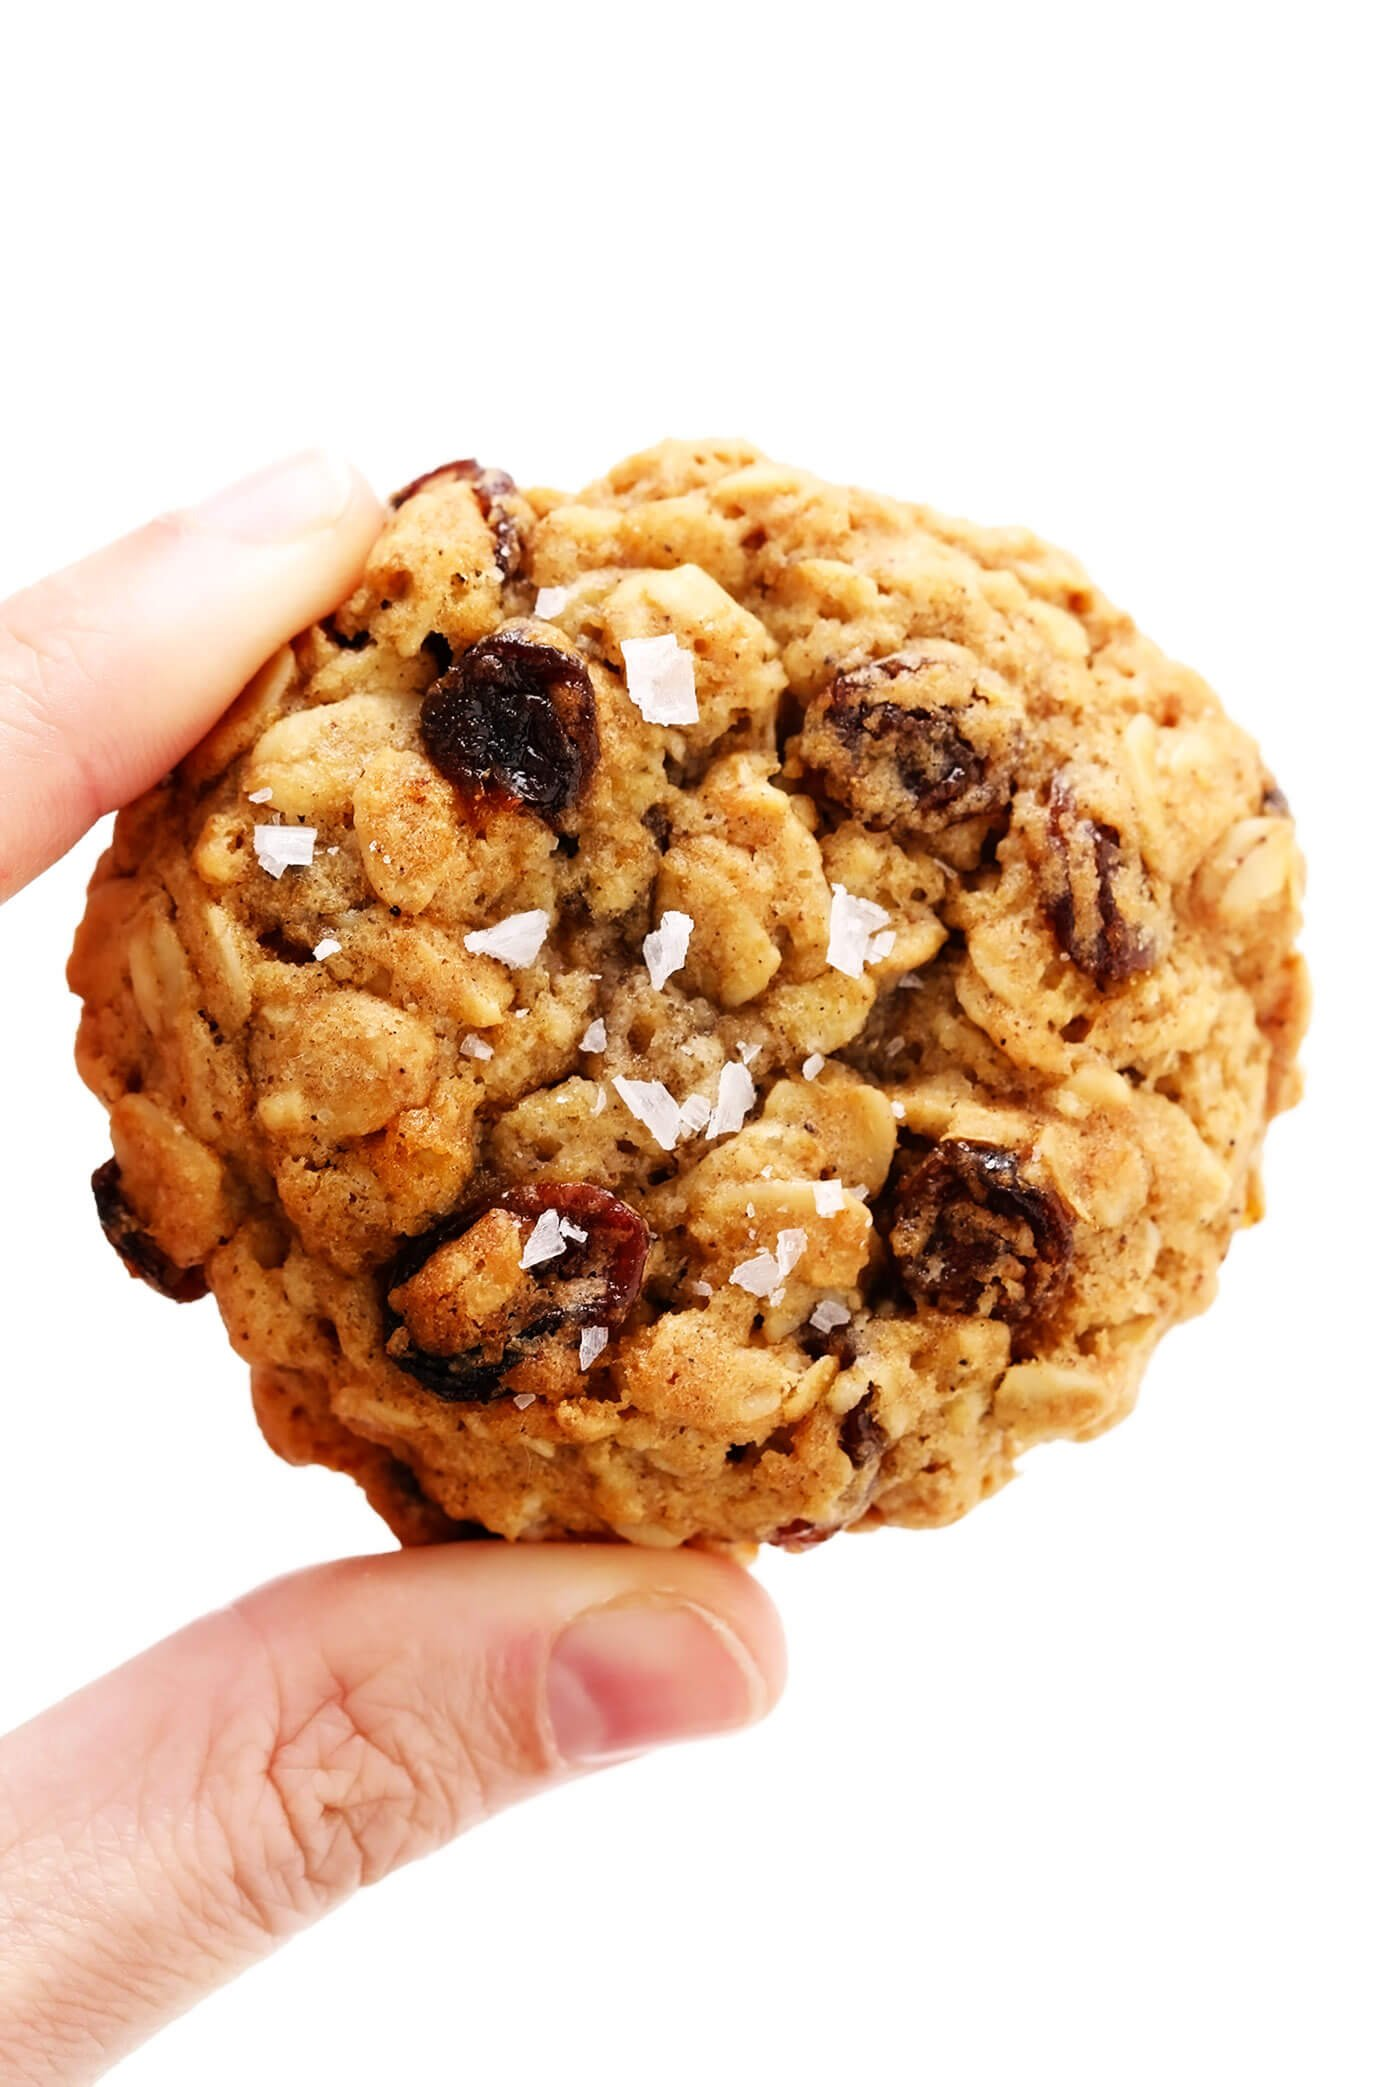 Oatmeal Raisin Cookie Closeup